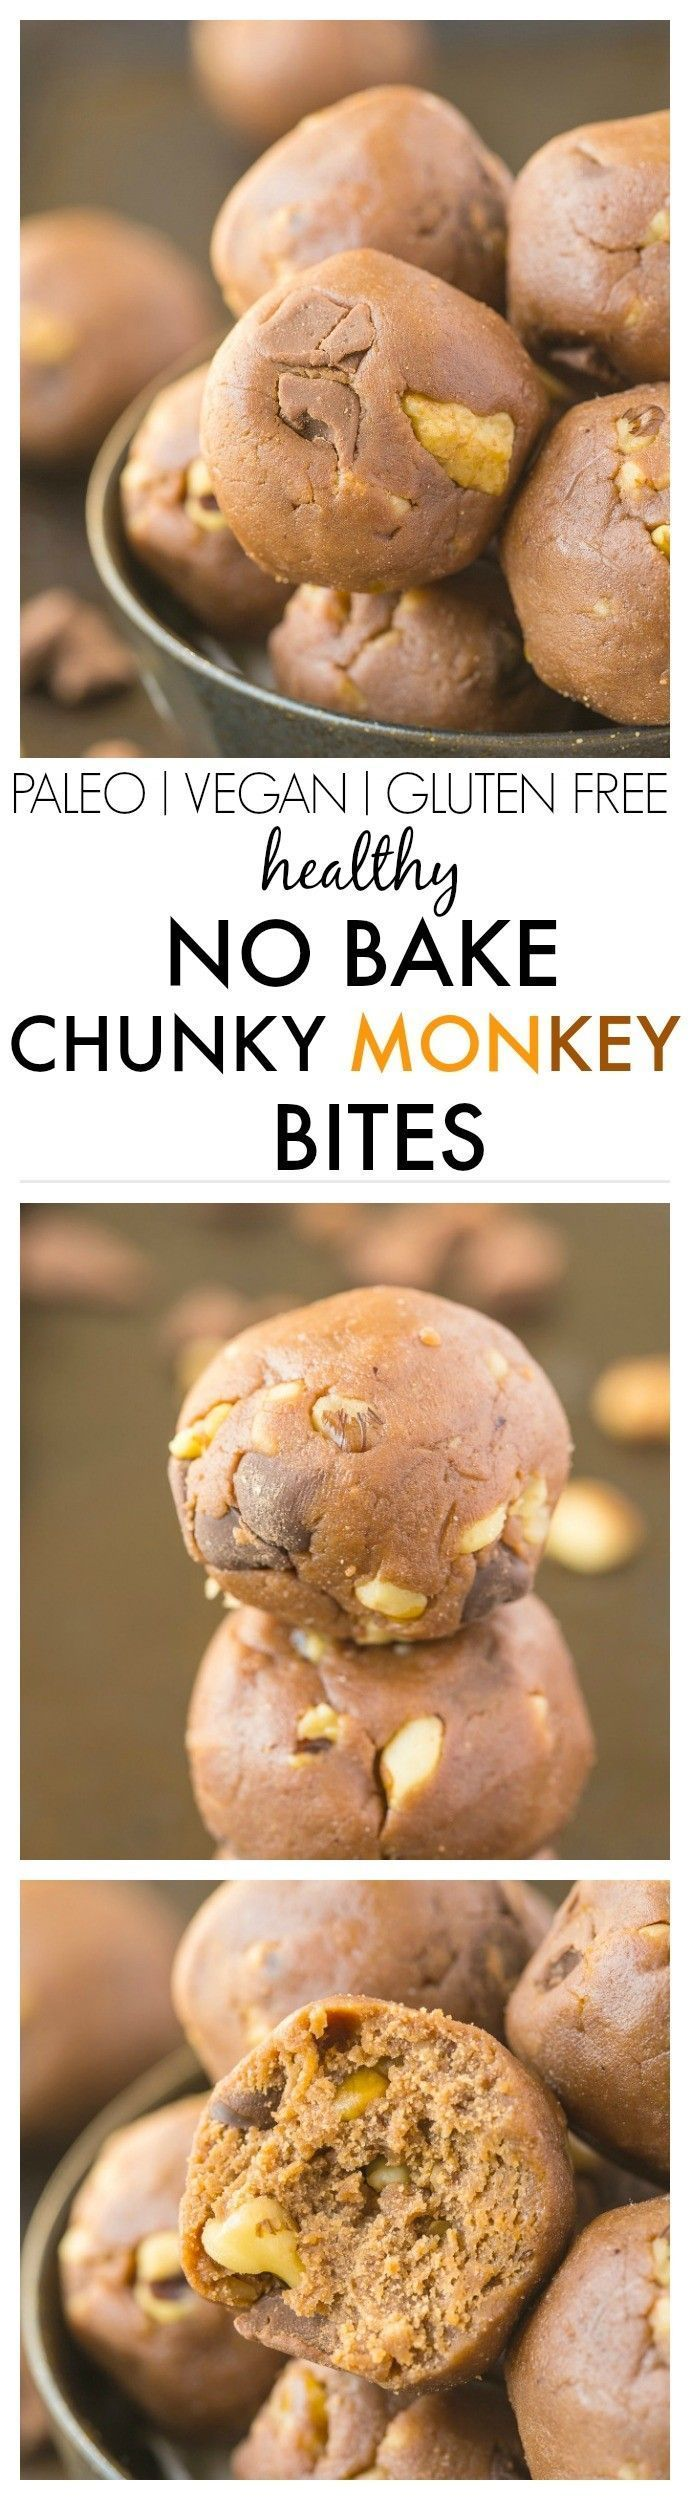 No Bake Chunky Monke No Bake Chunky Monkey Bites which are the perfect snack recipe which tastes anything but healthy- But they are! Ready in 5 minutes! vegan, gluten free, paleo, high protein recipe https://www.pinterest.com/pin/330733166376557316/